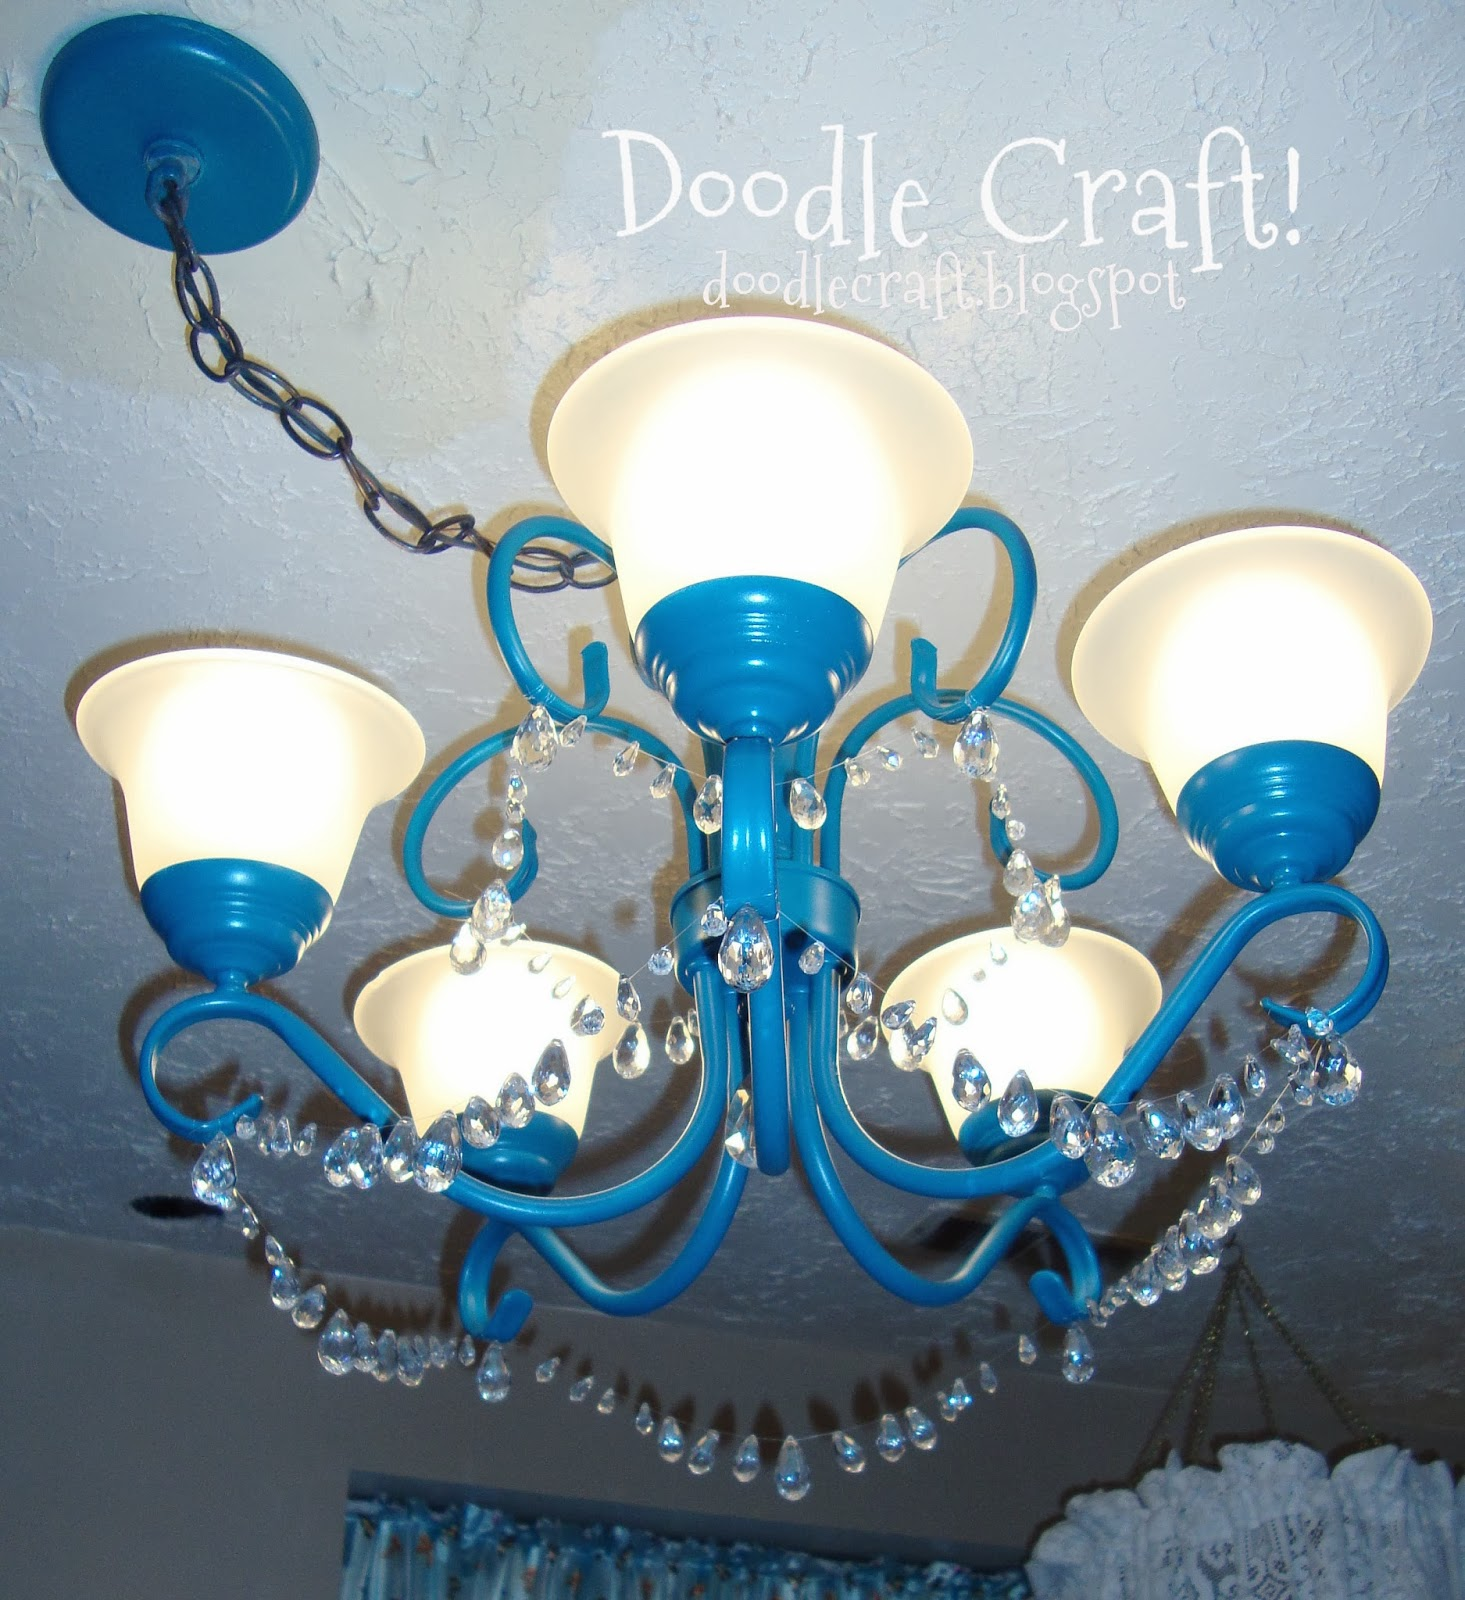 http://doodlecraft.blogspot.com/2011/11/fancy-room-chandelier.html